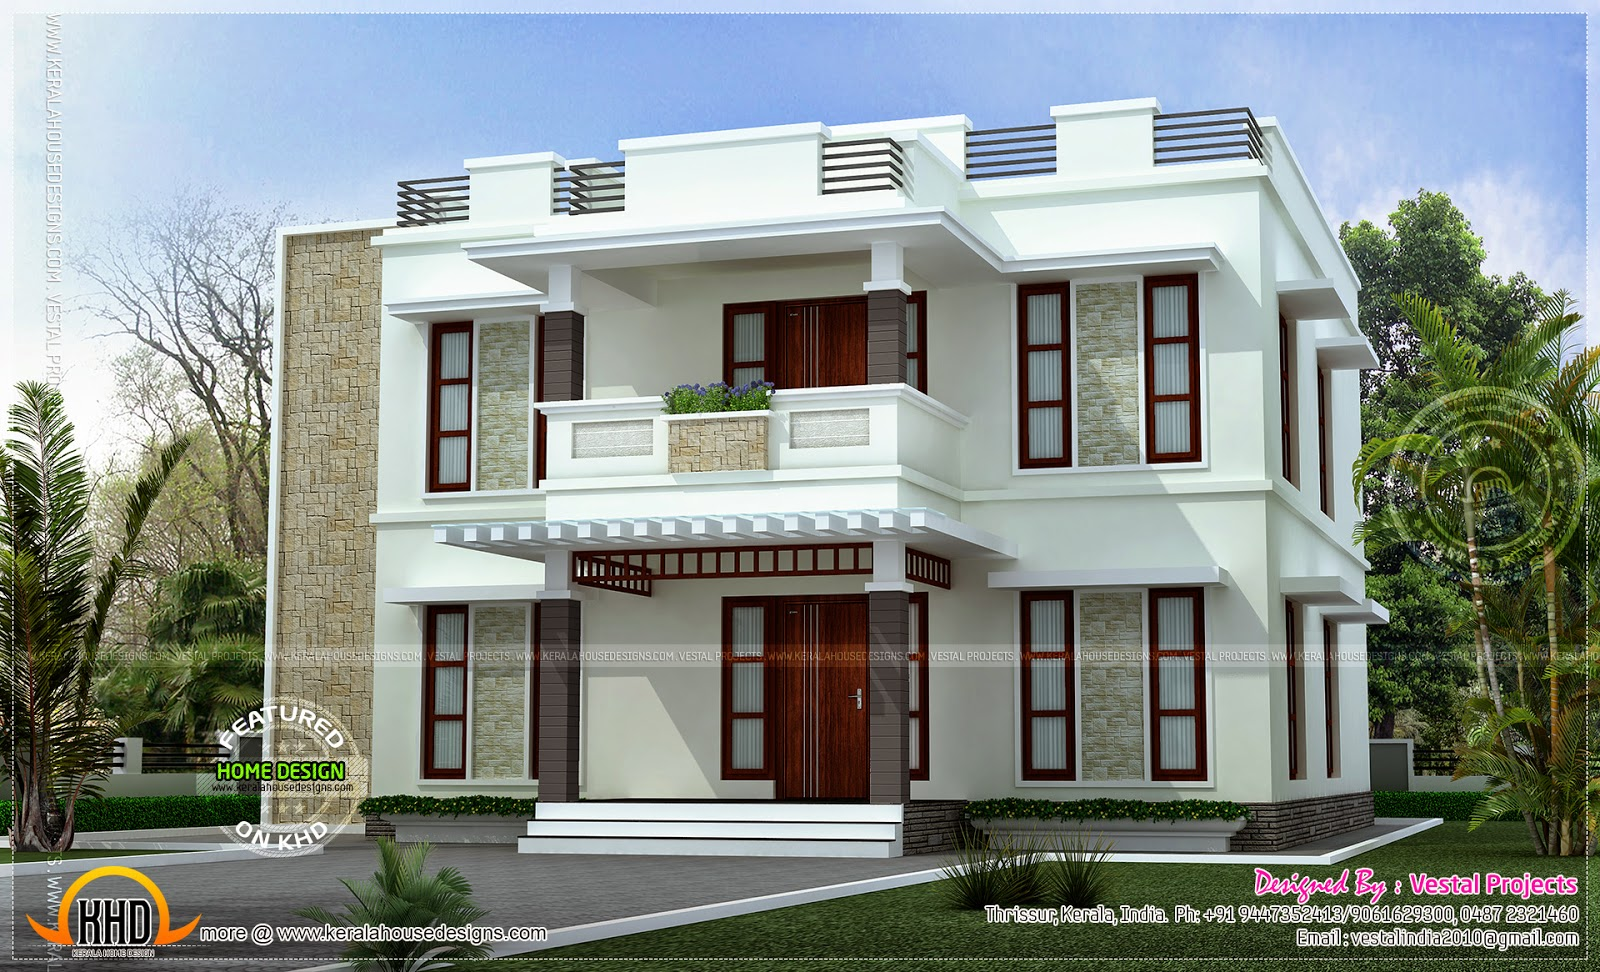 Beautiful home design flat roof style kerala home design for Looking for house plans